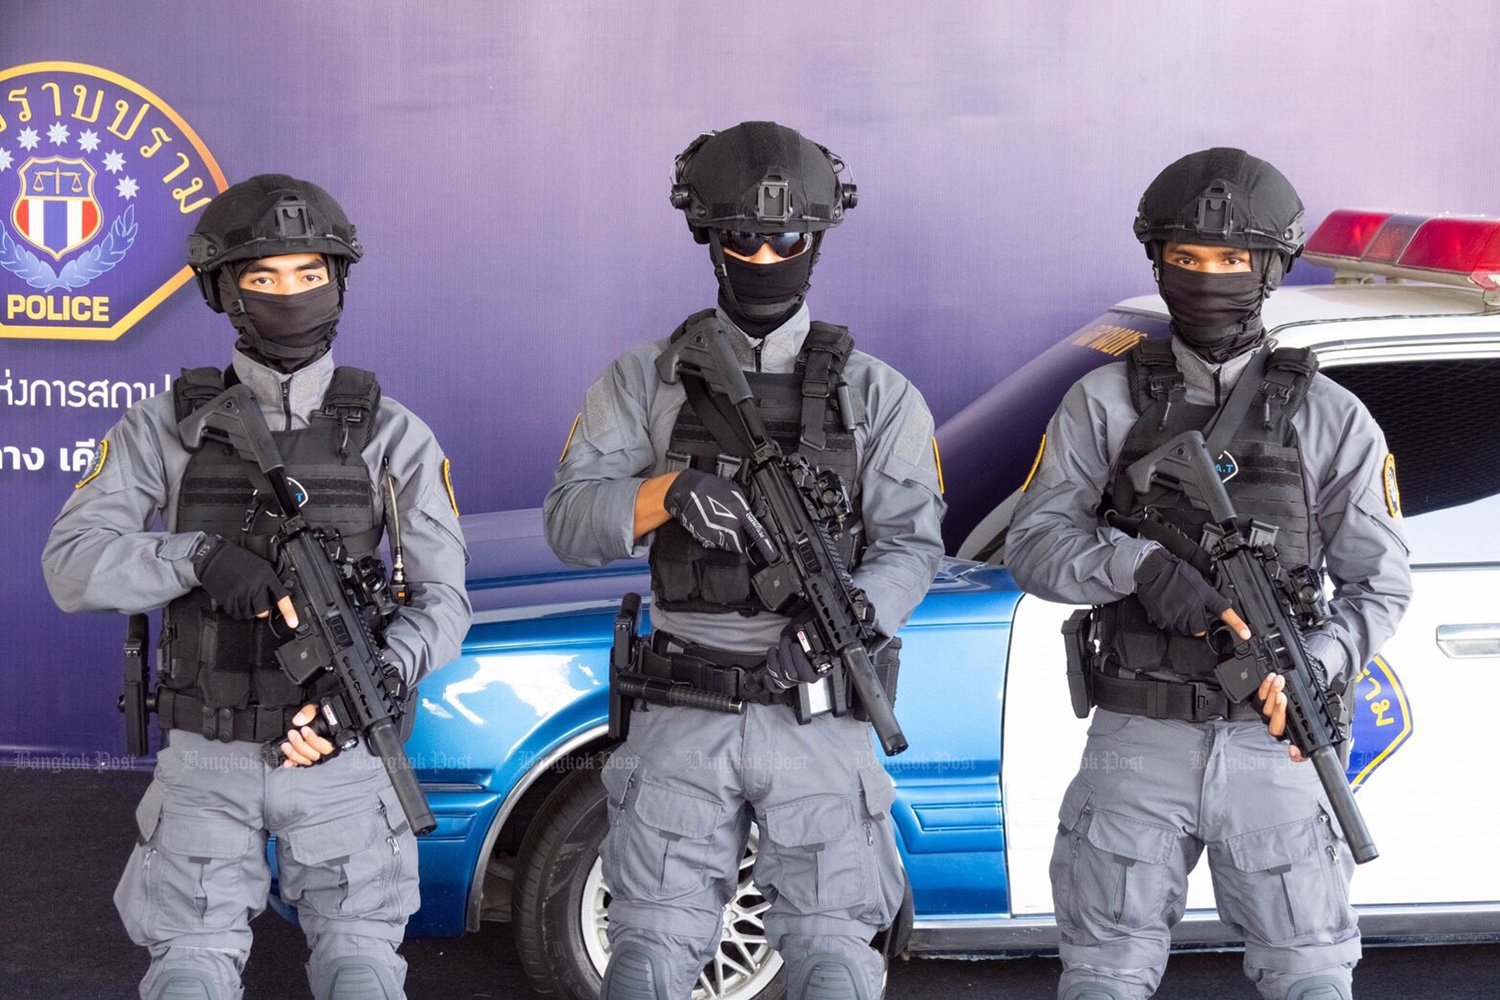 A new special weapons and tactics unit has been set up by the Crime Suppression Division to replace a commando unit. (Photo by Wassayos Ngamkham)